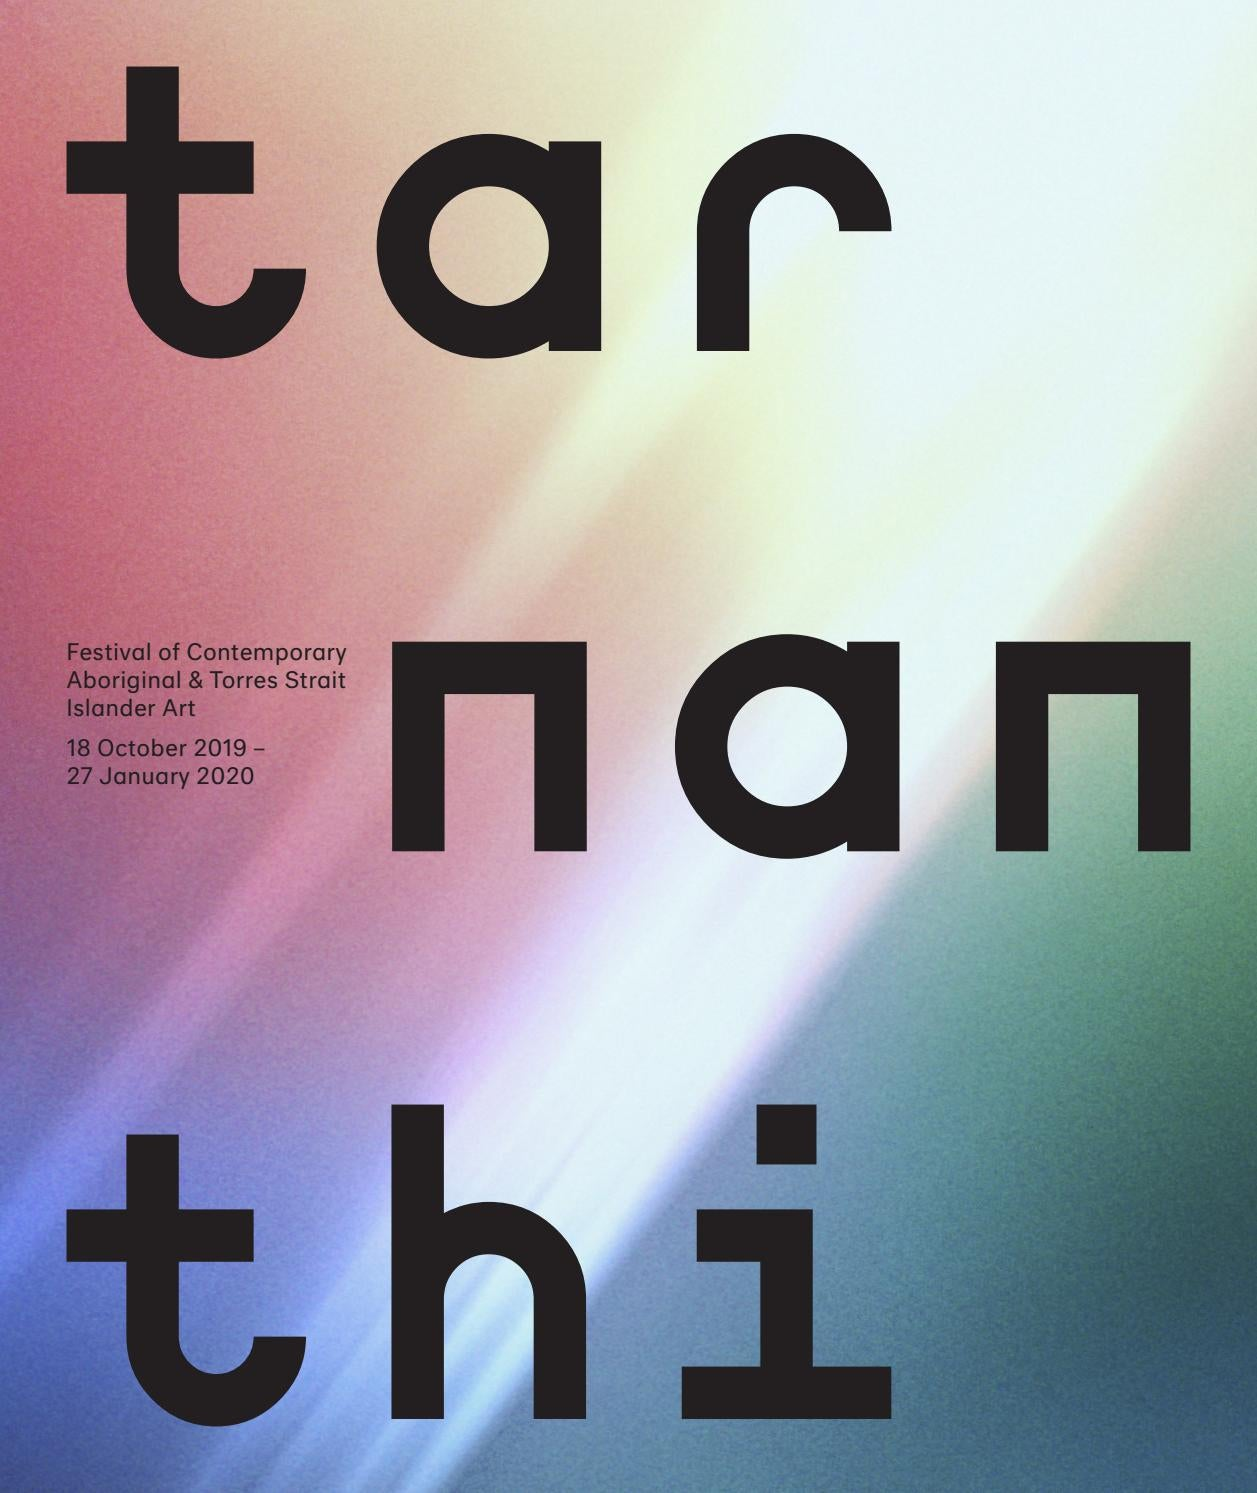 Mt Dora Art Festival 2020.Tarnanthi 2019 Program By Art Gallery Of South Australia Issuu